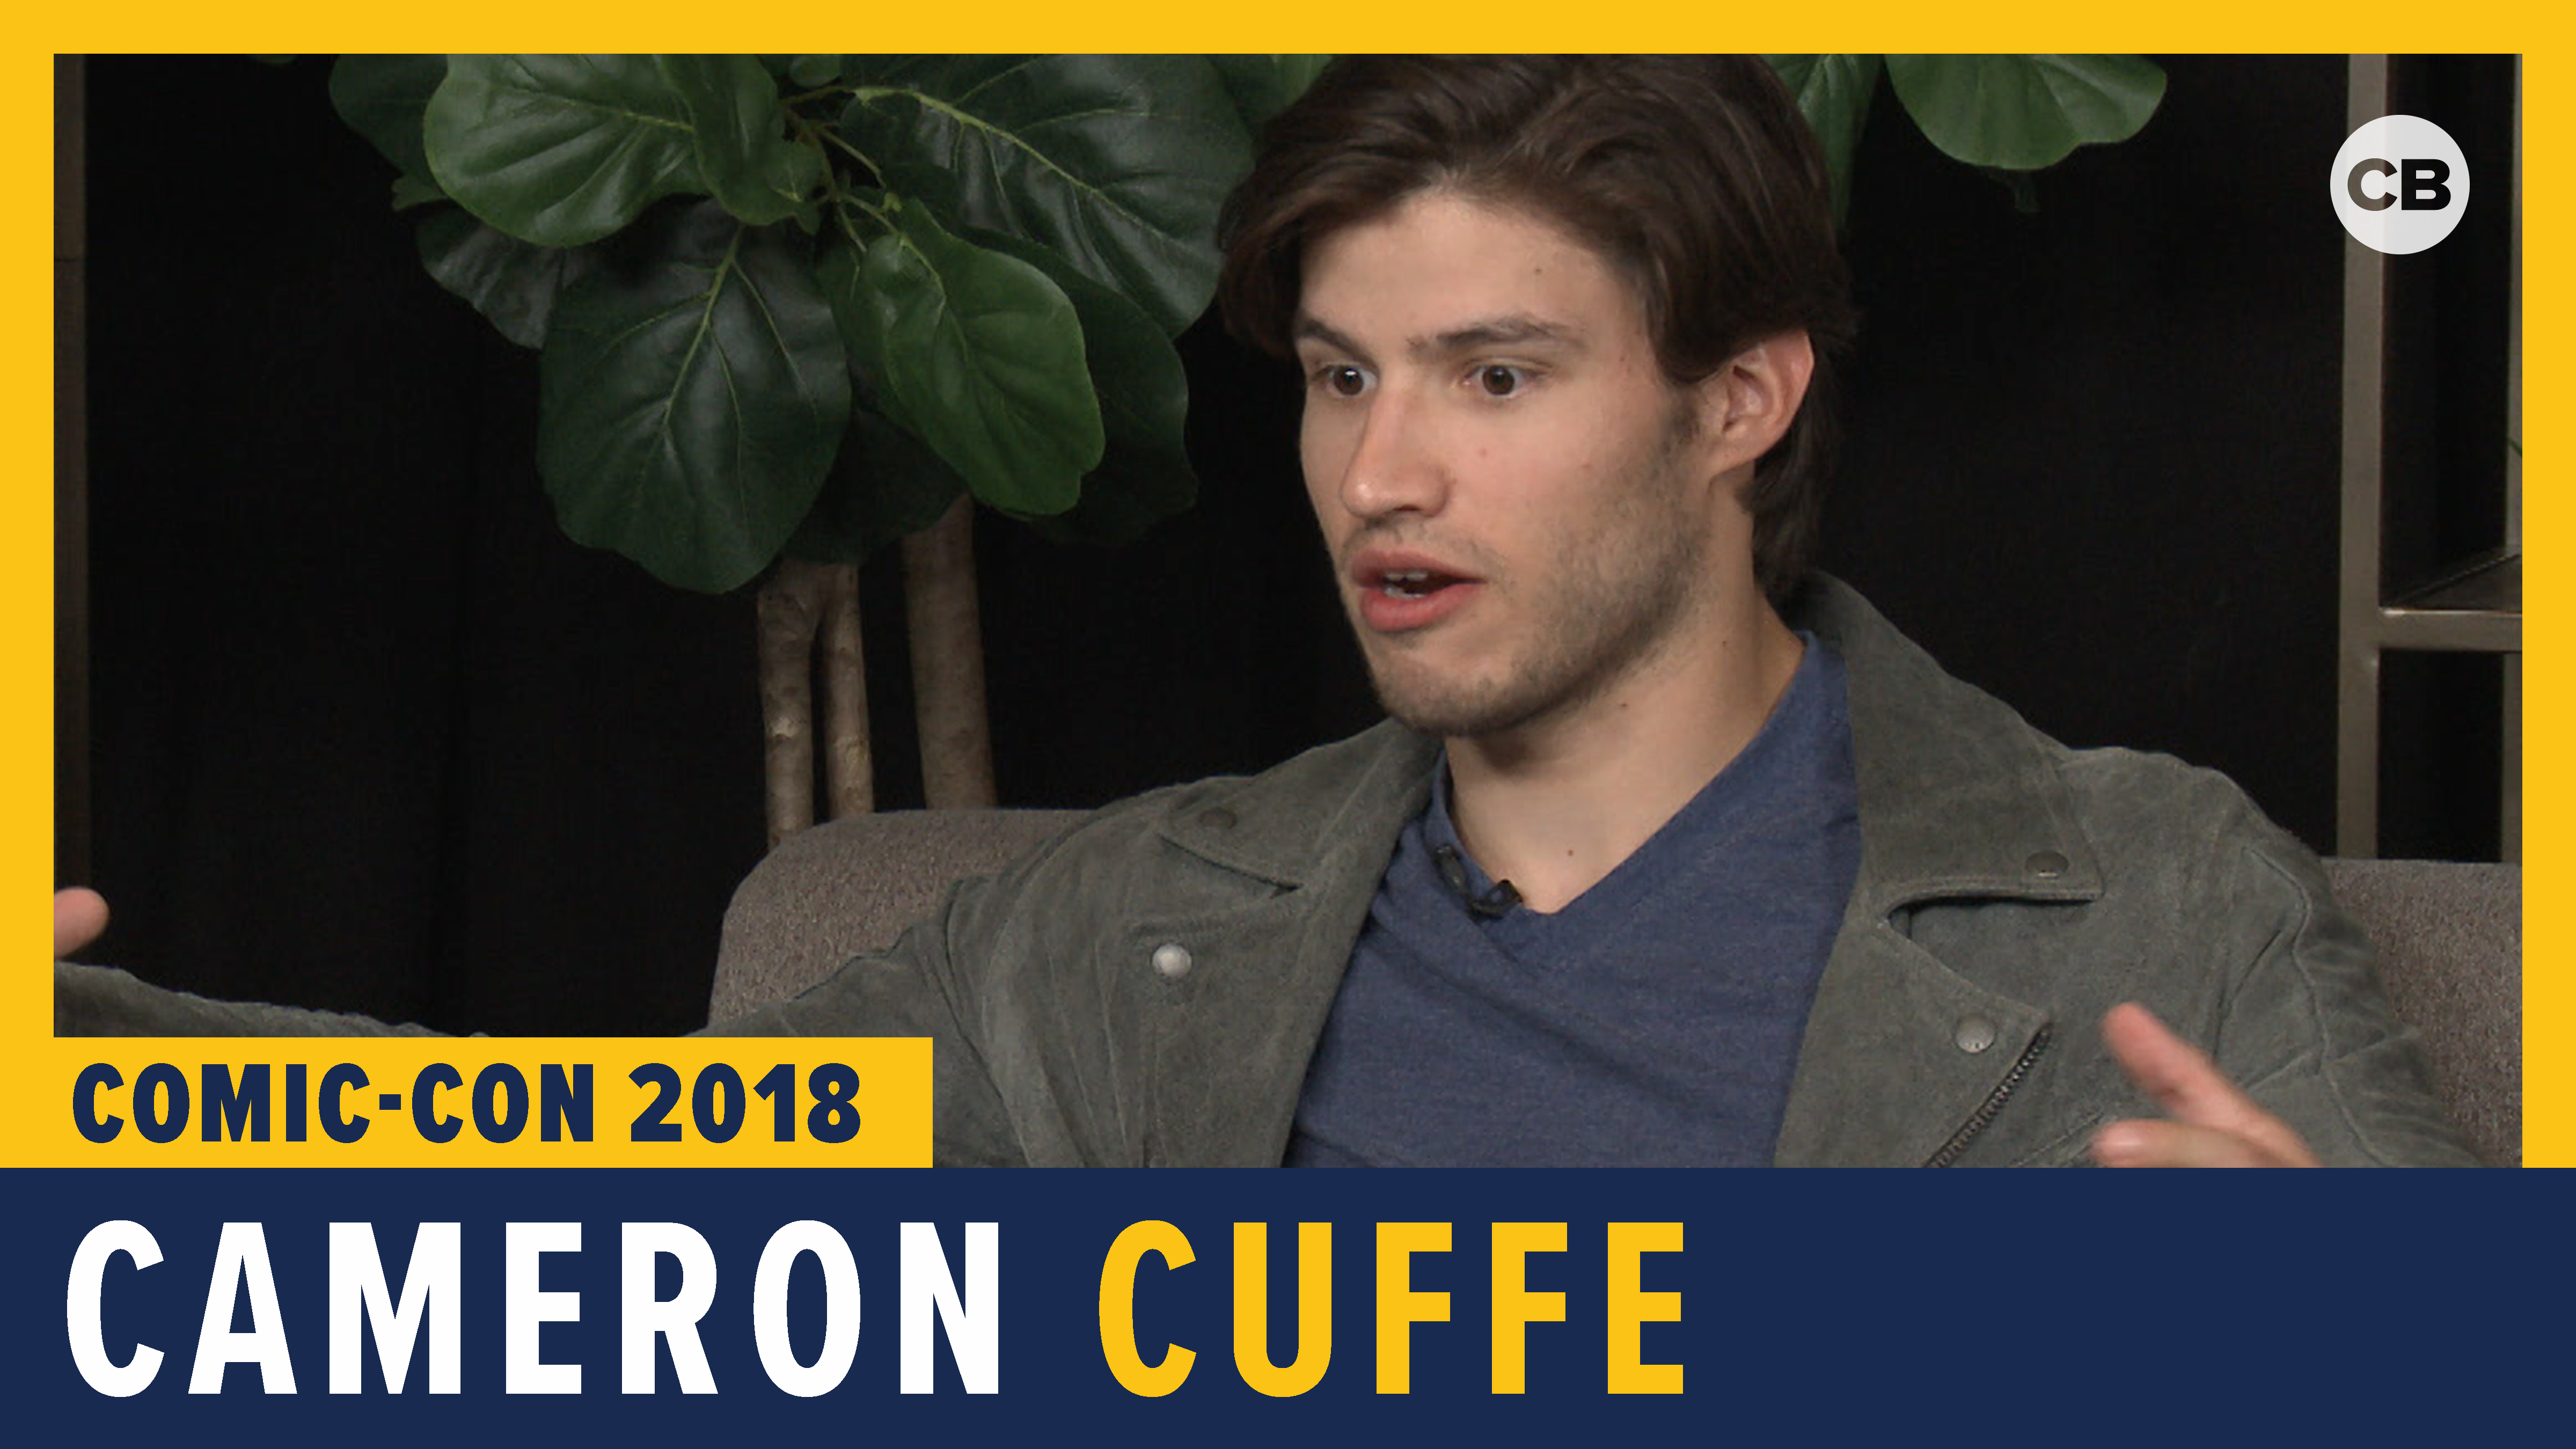 Cameron Cuffe (Krypton) - SDCC 2018 Exclusive Interview screen capture